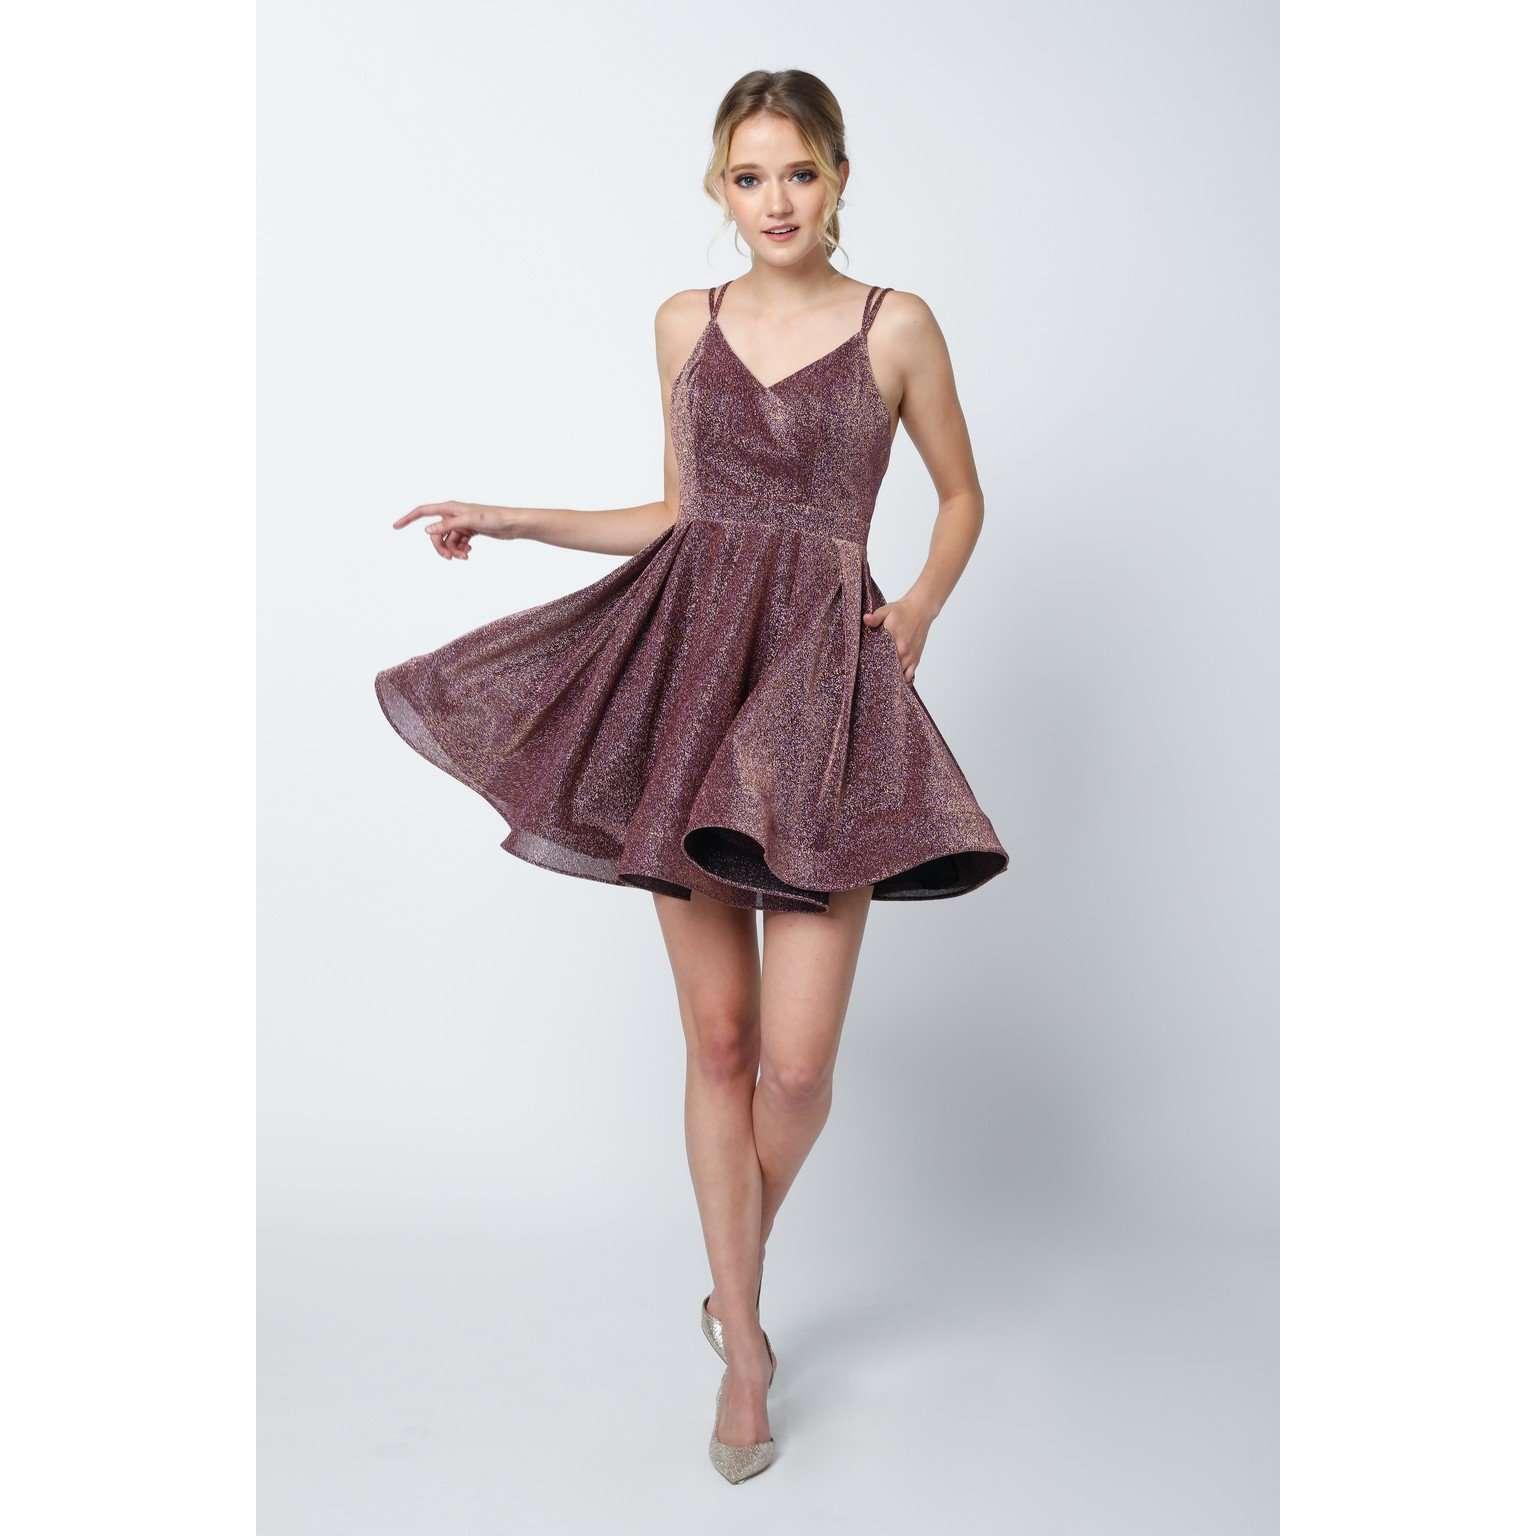 Glitter Stretch Fit and Flare Short Dress 832 - Julietdresses